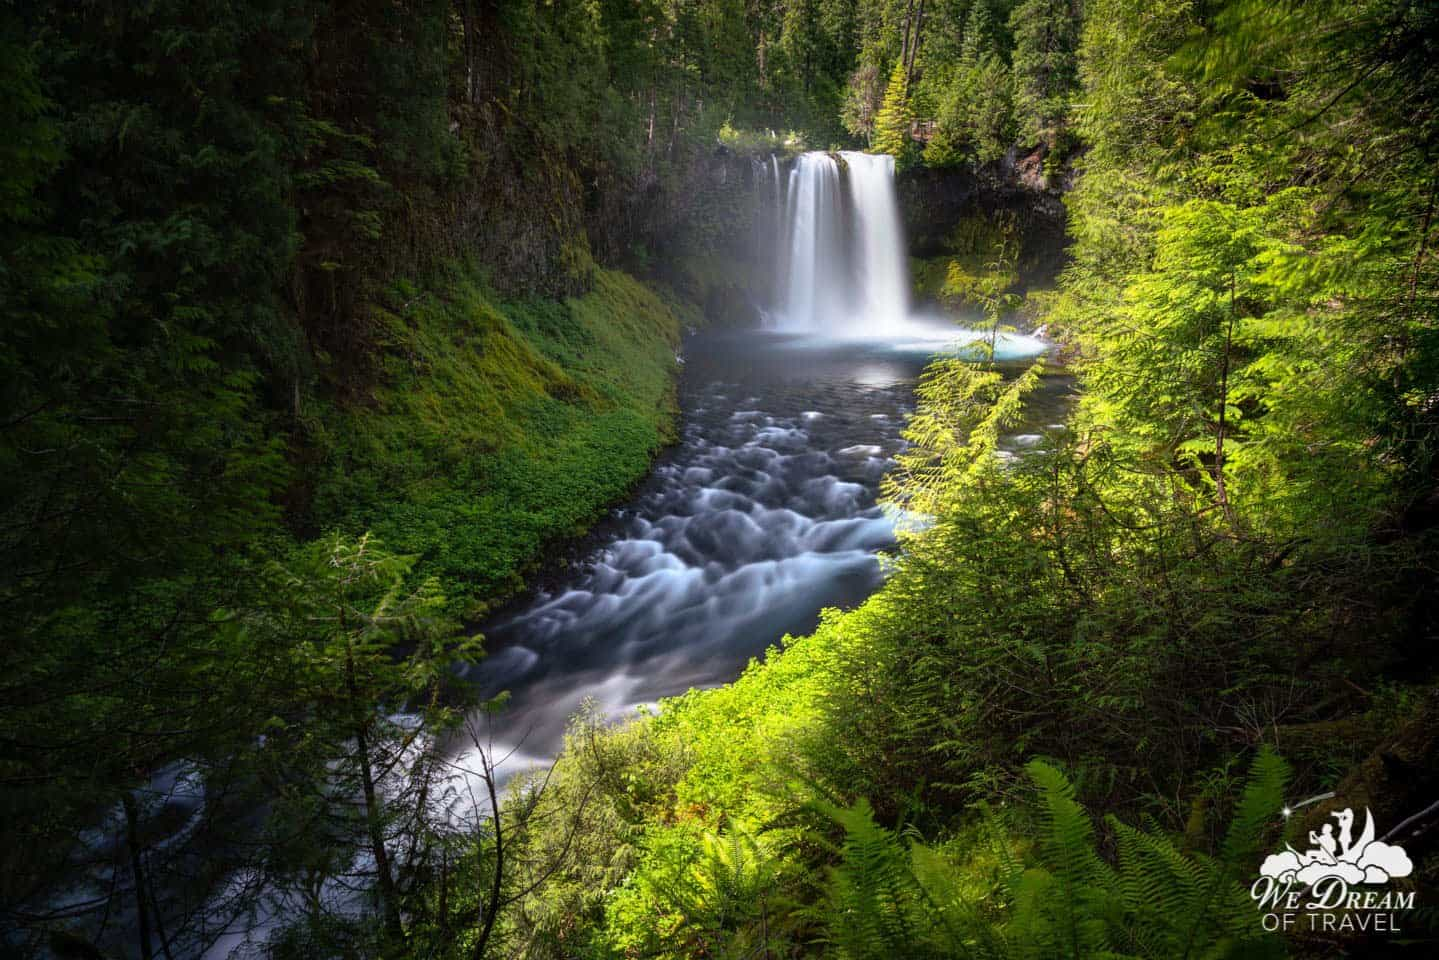 Koosah Falls is among the most quintessentially picturesque waterfalls in Oregon.